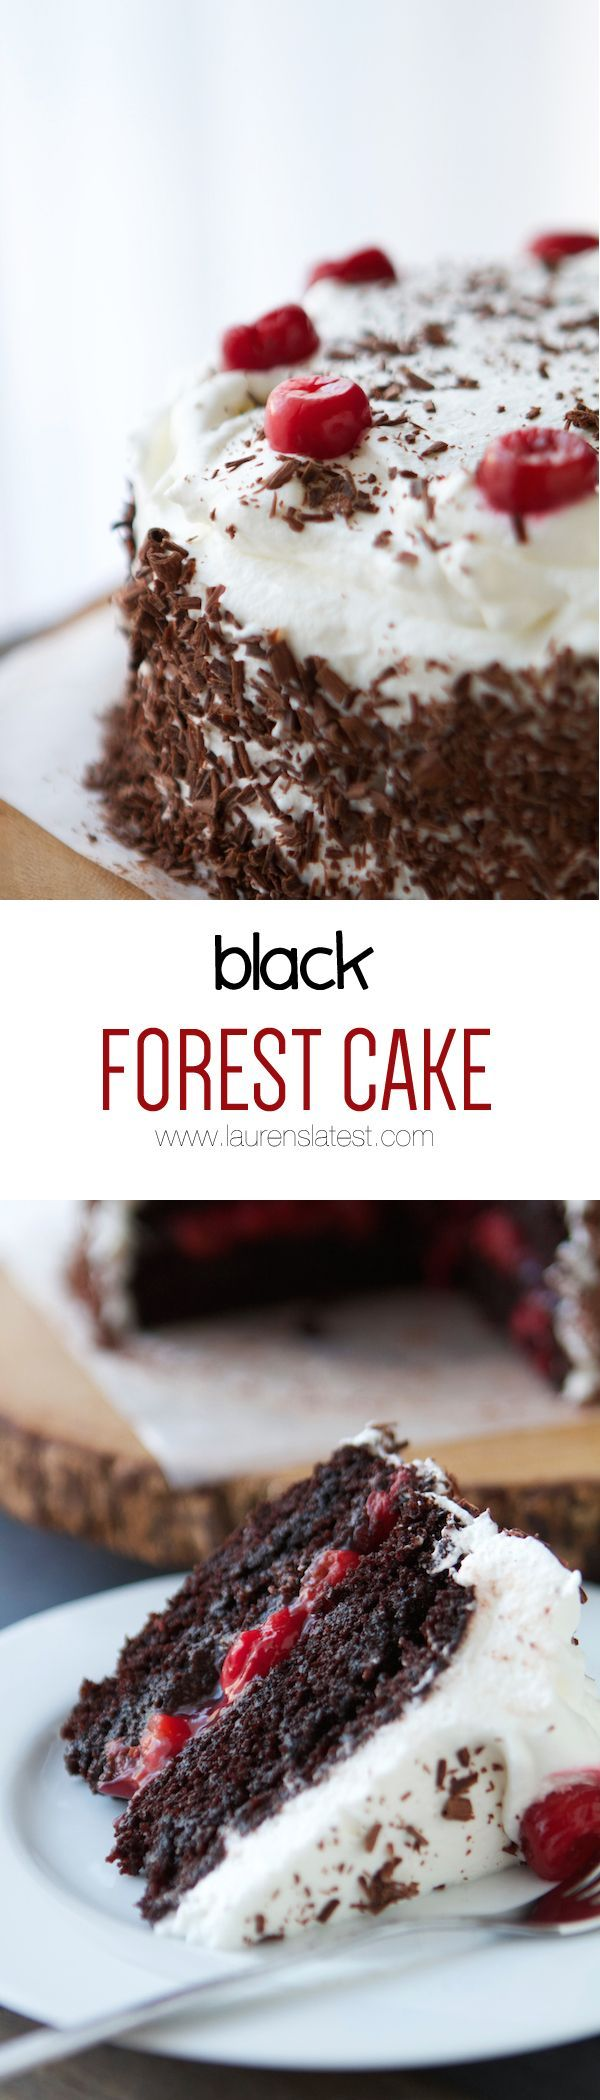 This Black Forest Cake is so moist and the frosting is so creamy! Everyone loved it!